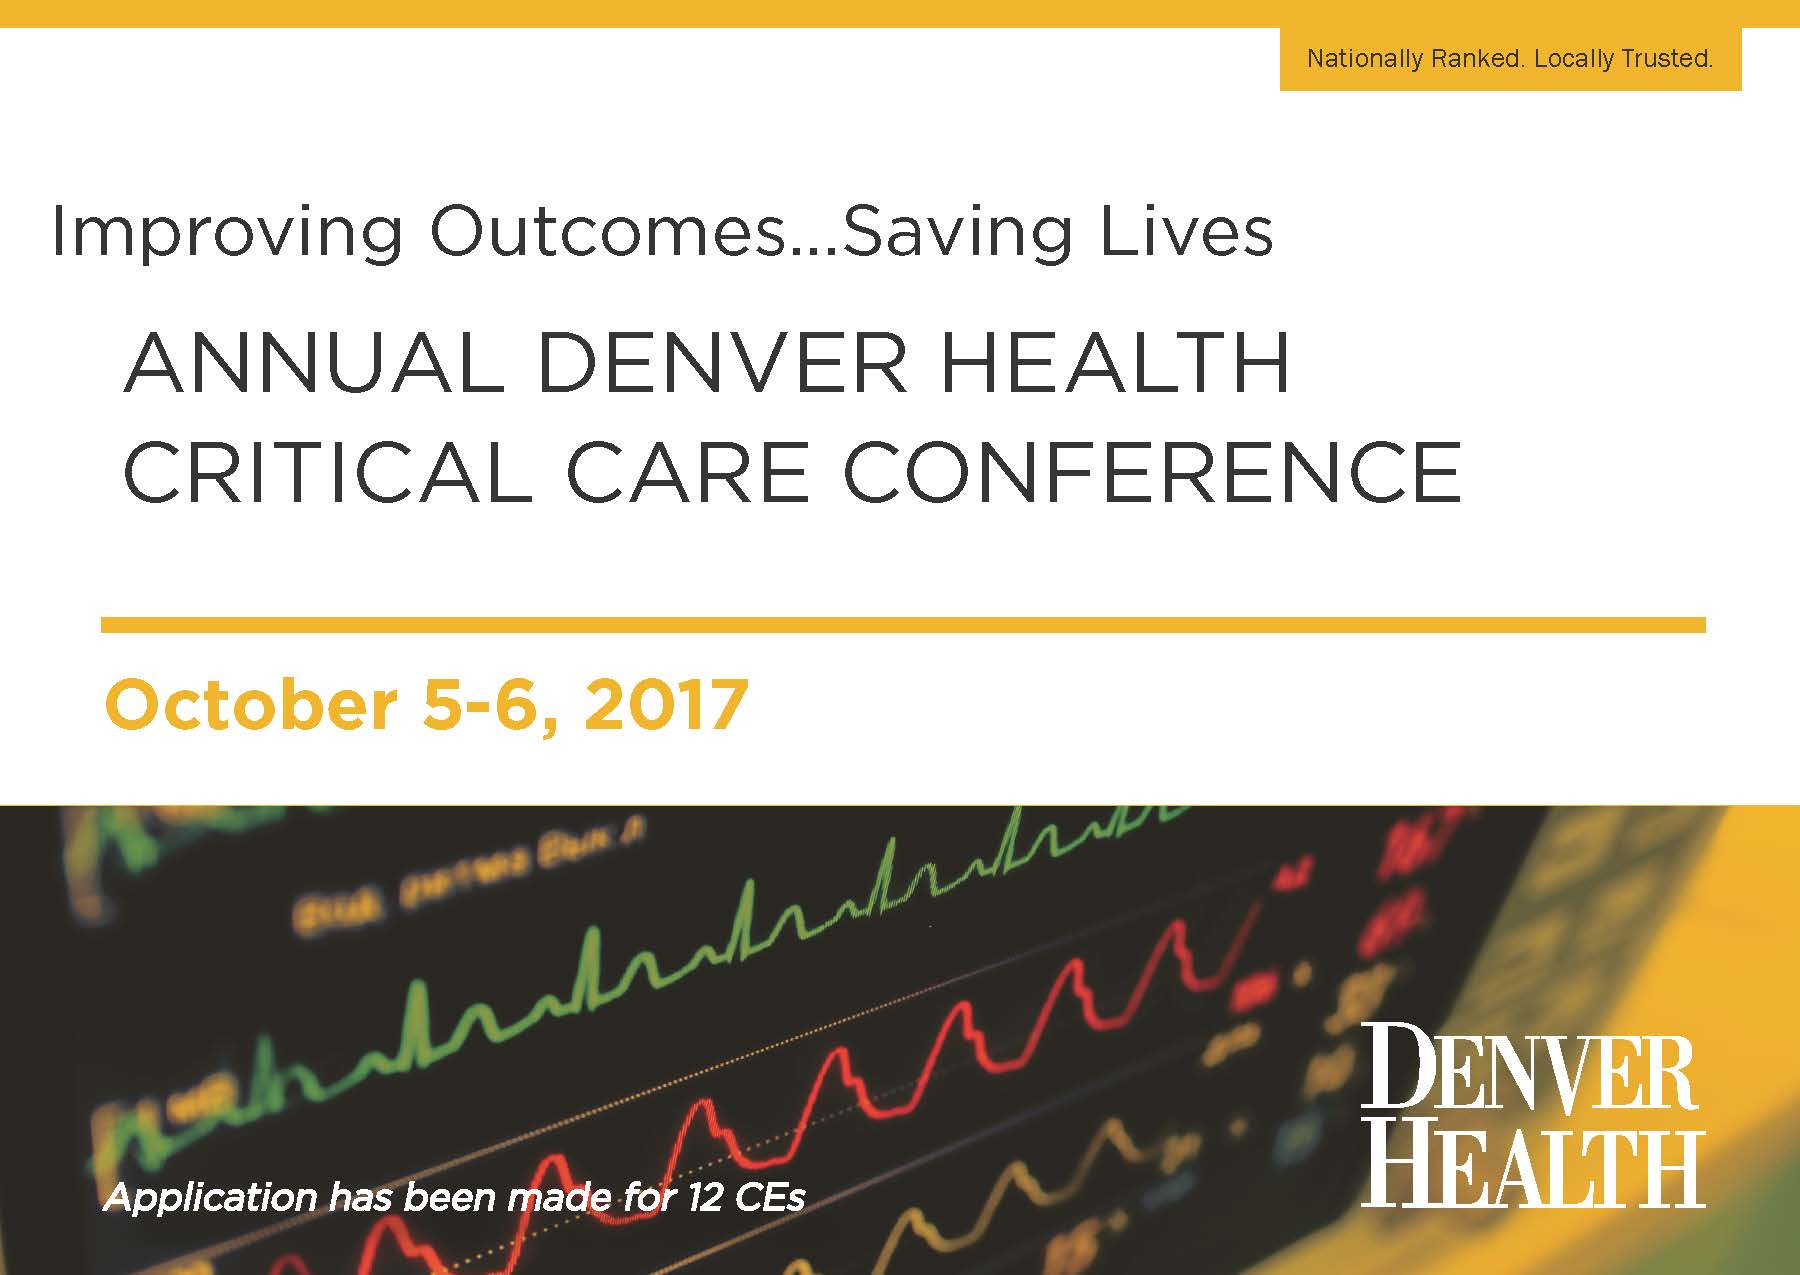 2017 Improving Outcomes. . .Saving Lives Critical Care Conference